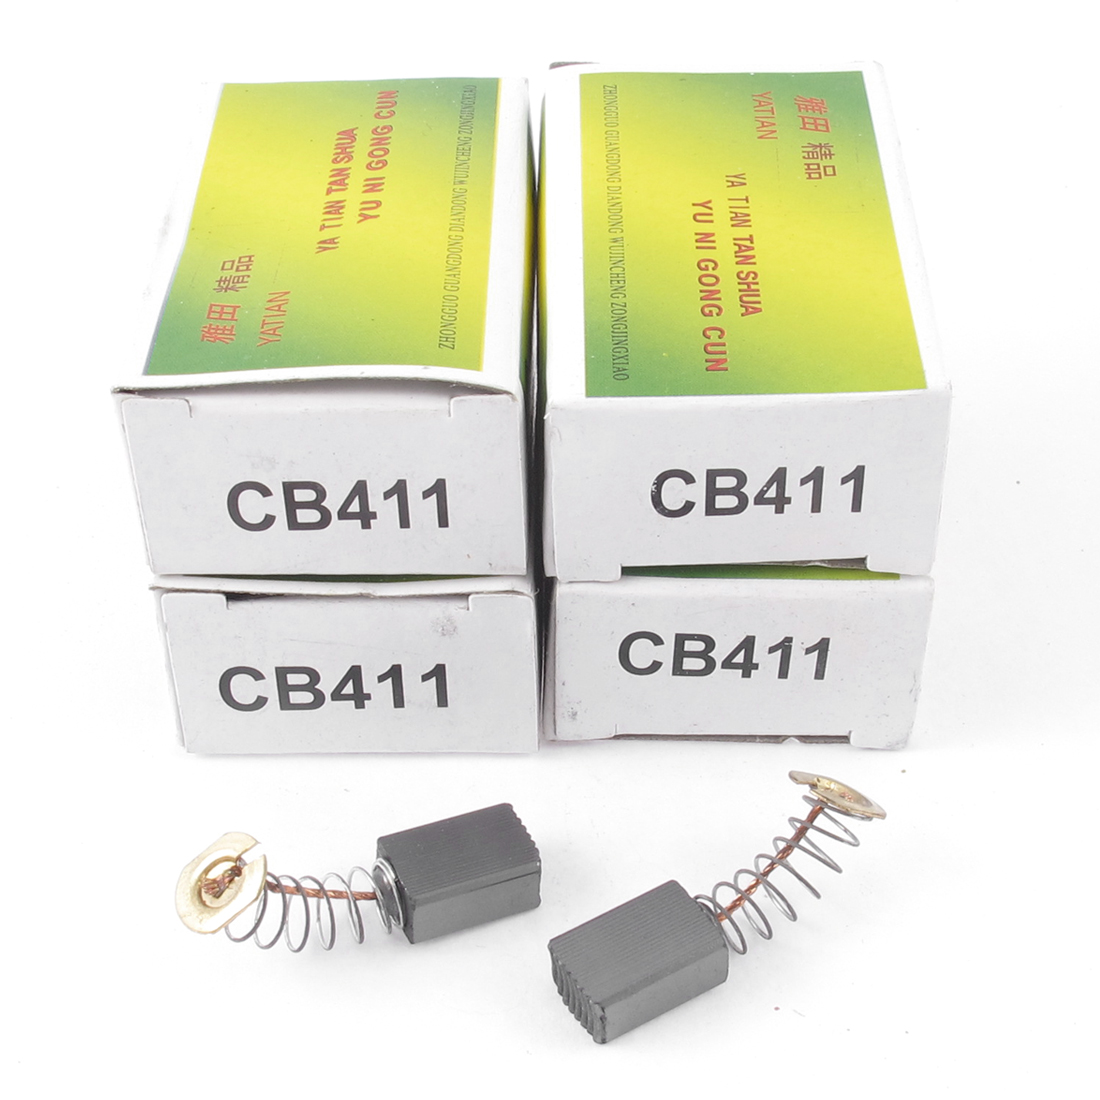 10 Pcs CB411 6MM x 9MM x 13MM Carbon Brush Replacement for Makita